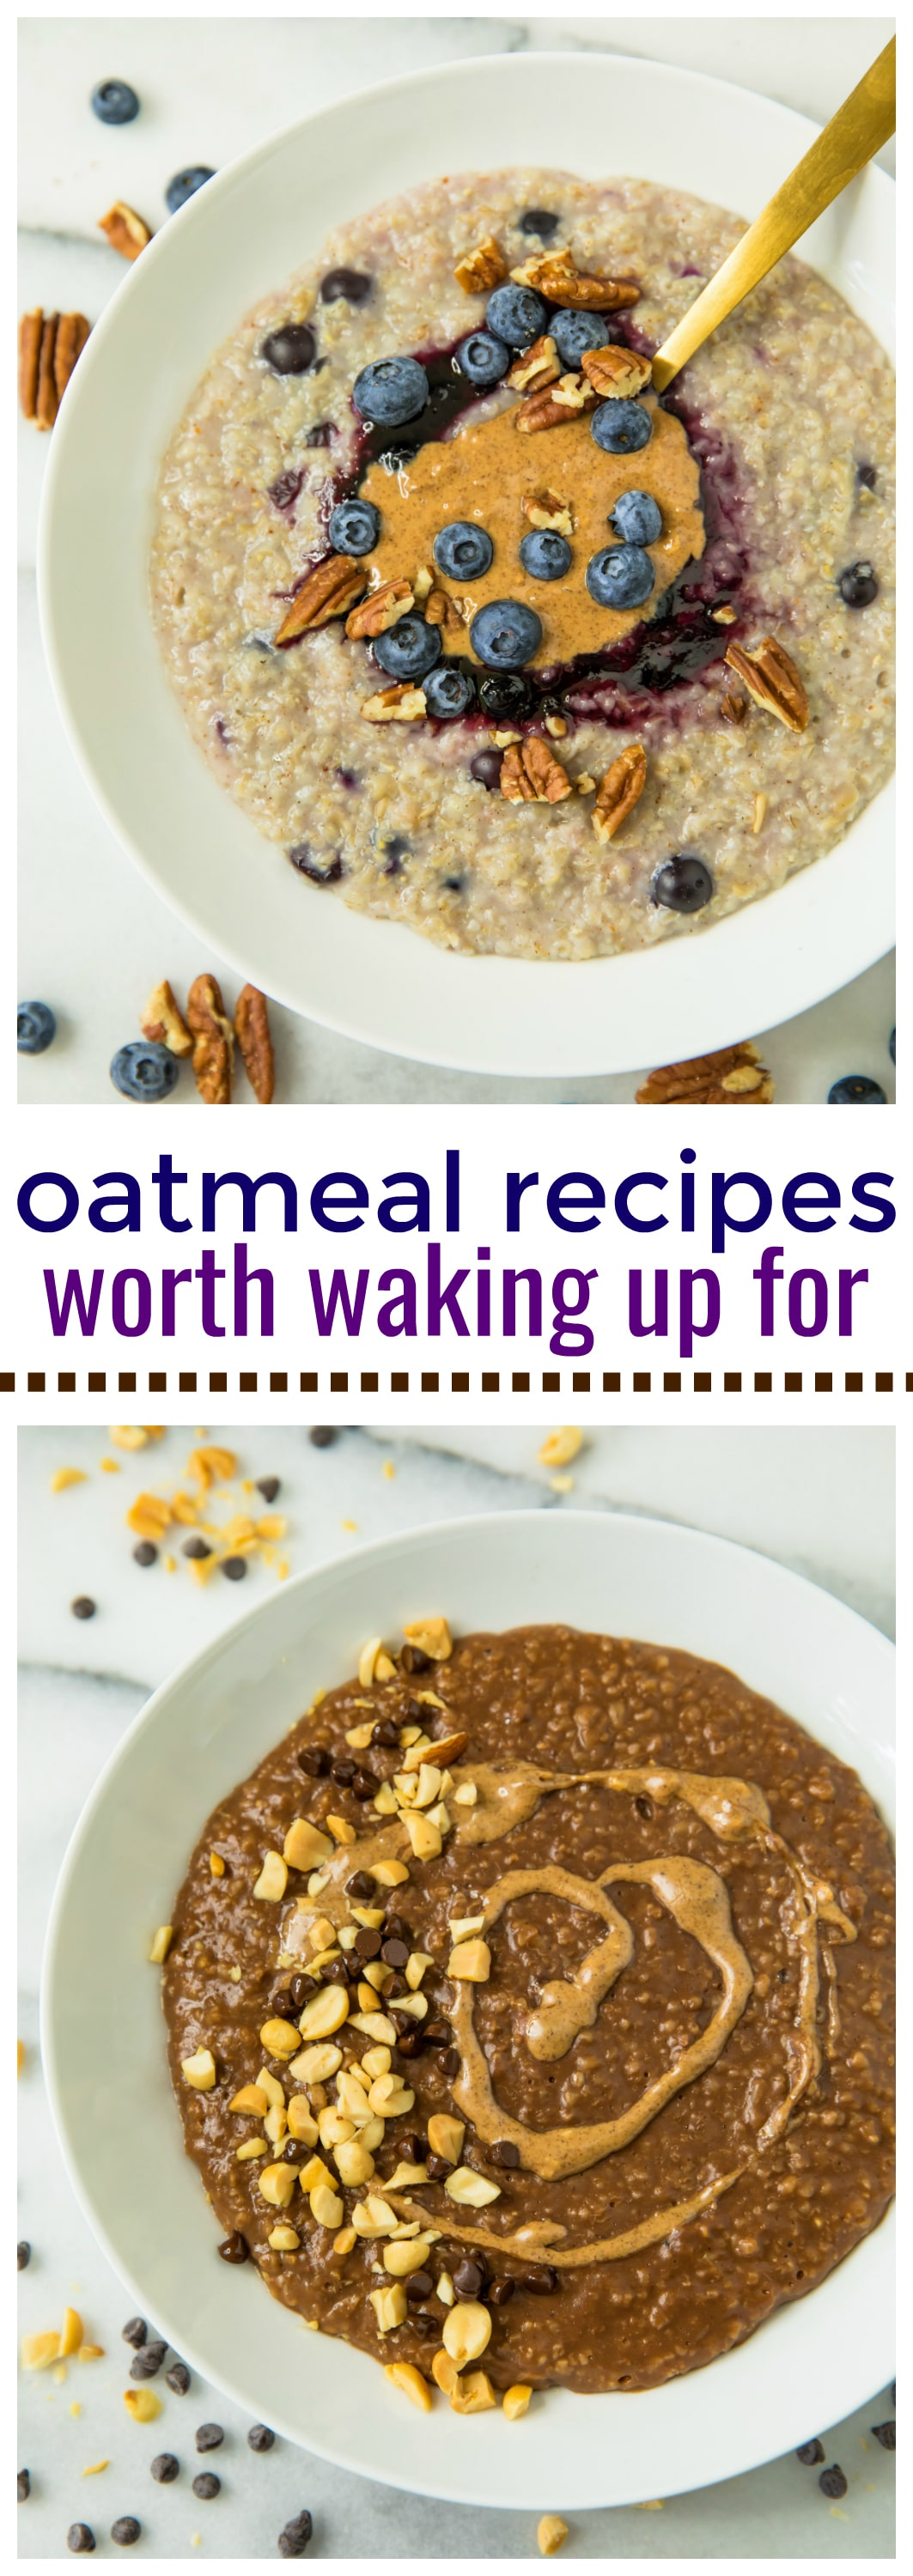 These Three Favorite Oatmeal Recipes Worth Waking Up For will give you new reasons to rise and shine. Oatmeal is such a satisfying, healthy morning meal and with add-in options like chocolate and almond butter, it's far from boring.